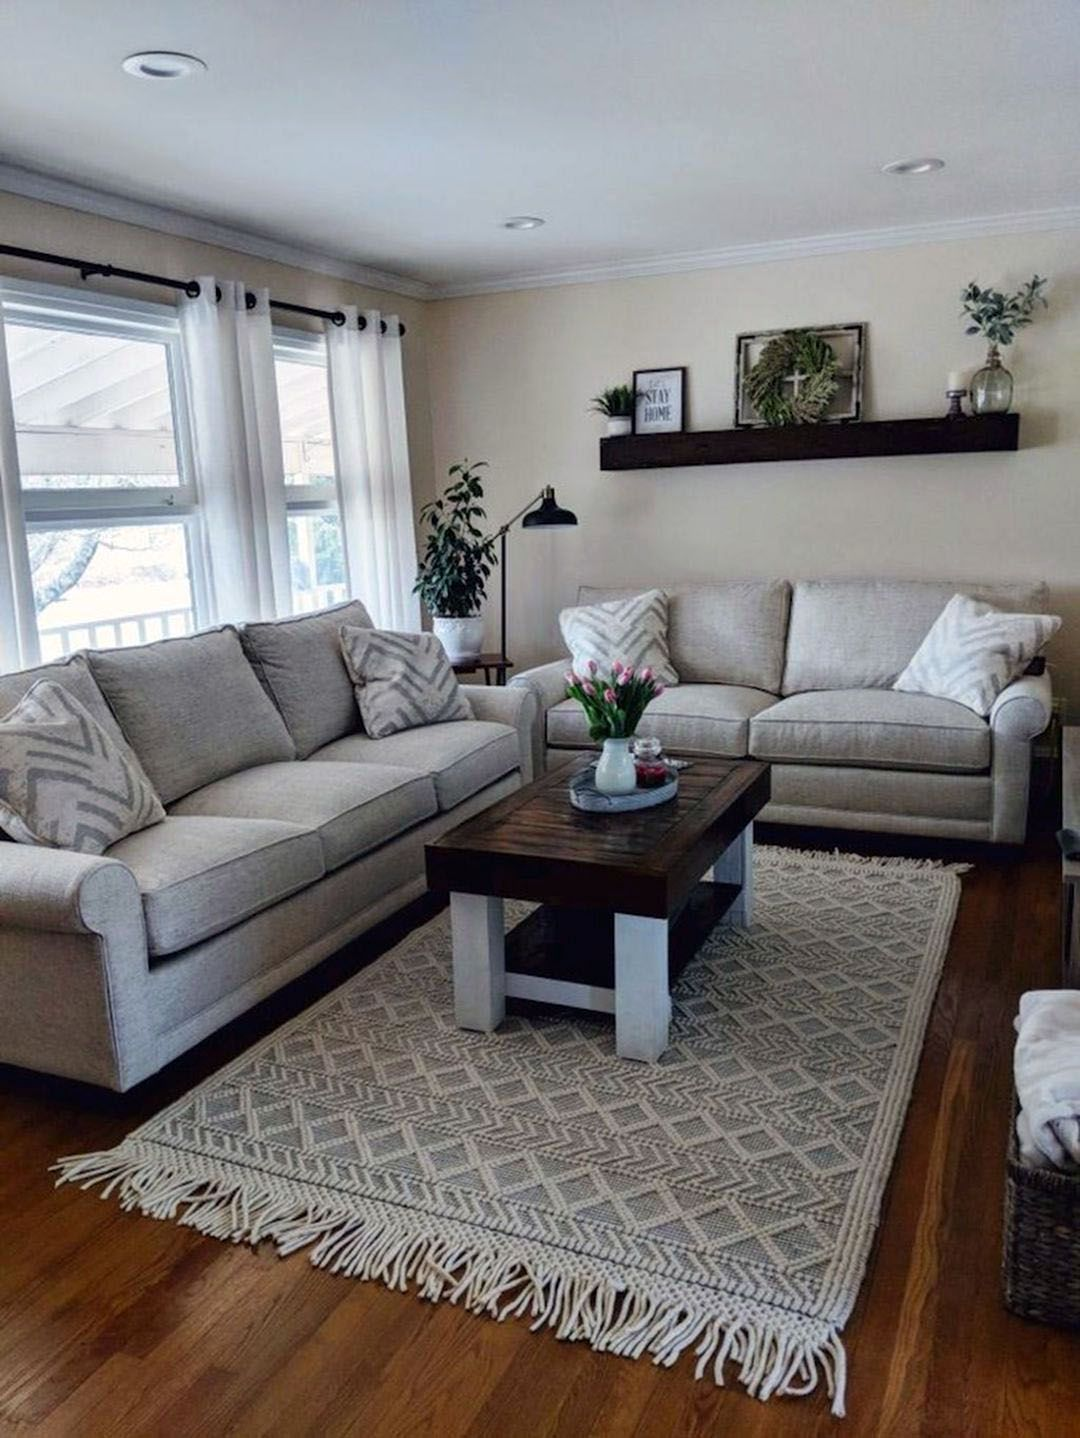 Tiny Residing Space Ideas Just How To Adorn A Cosy And